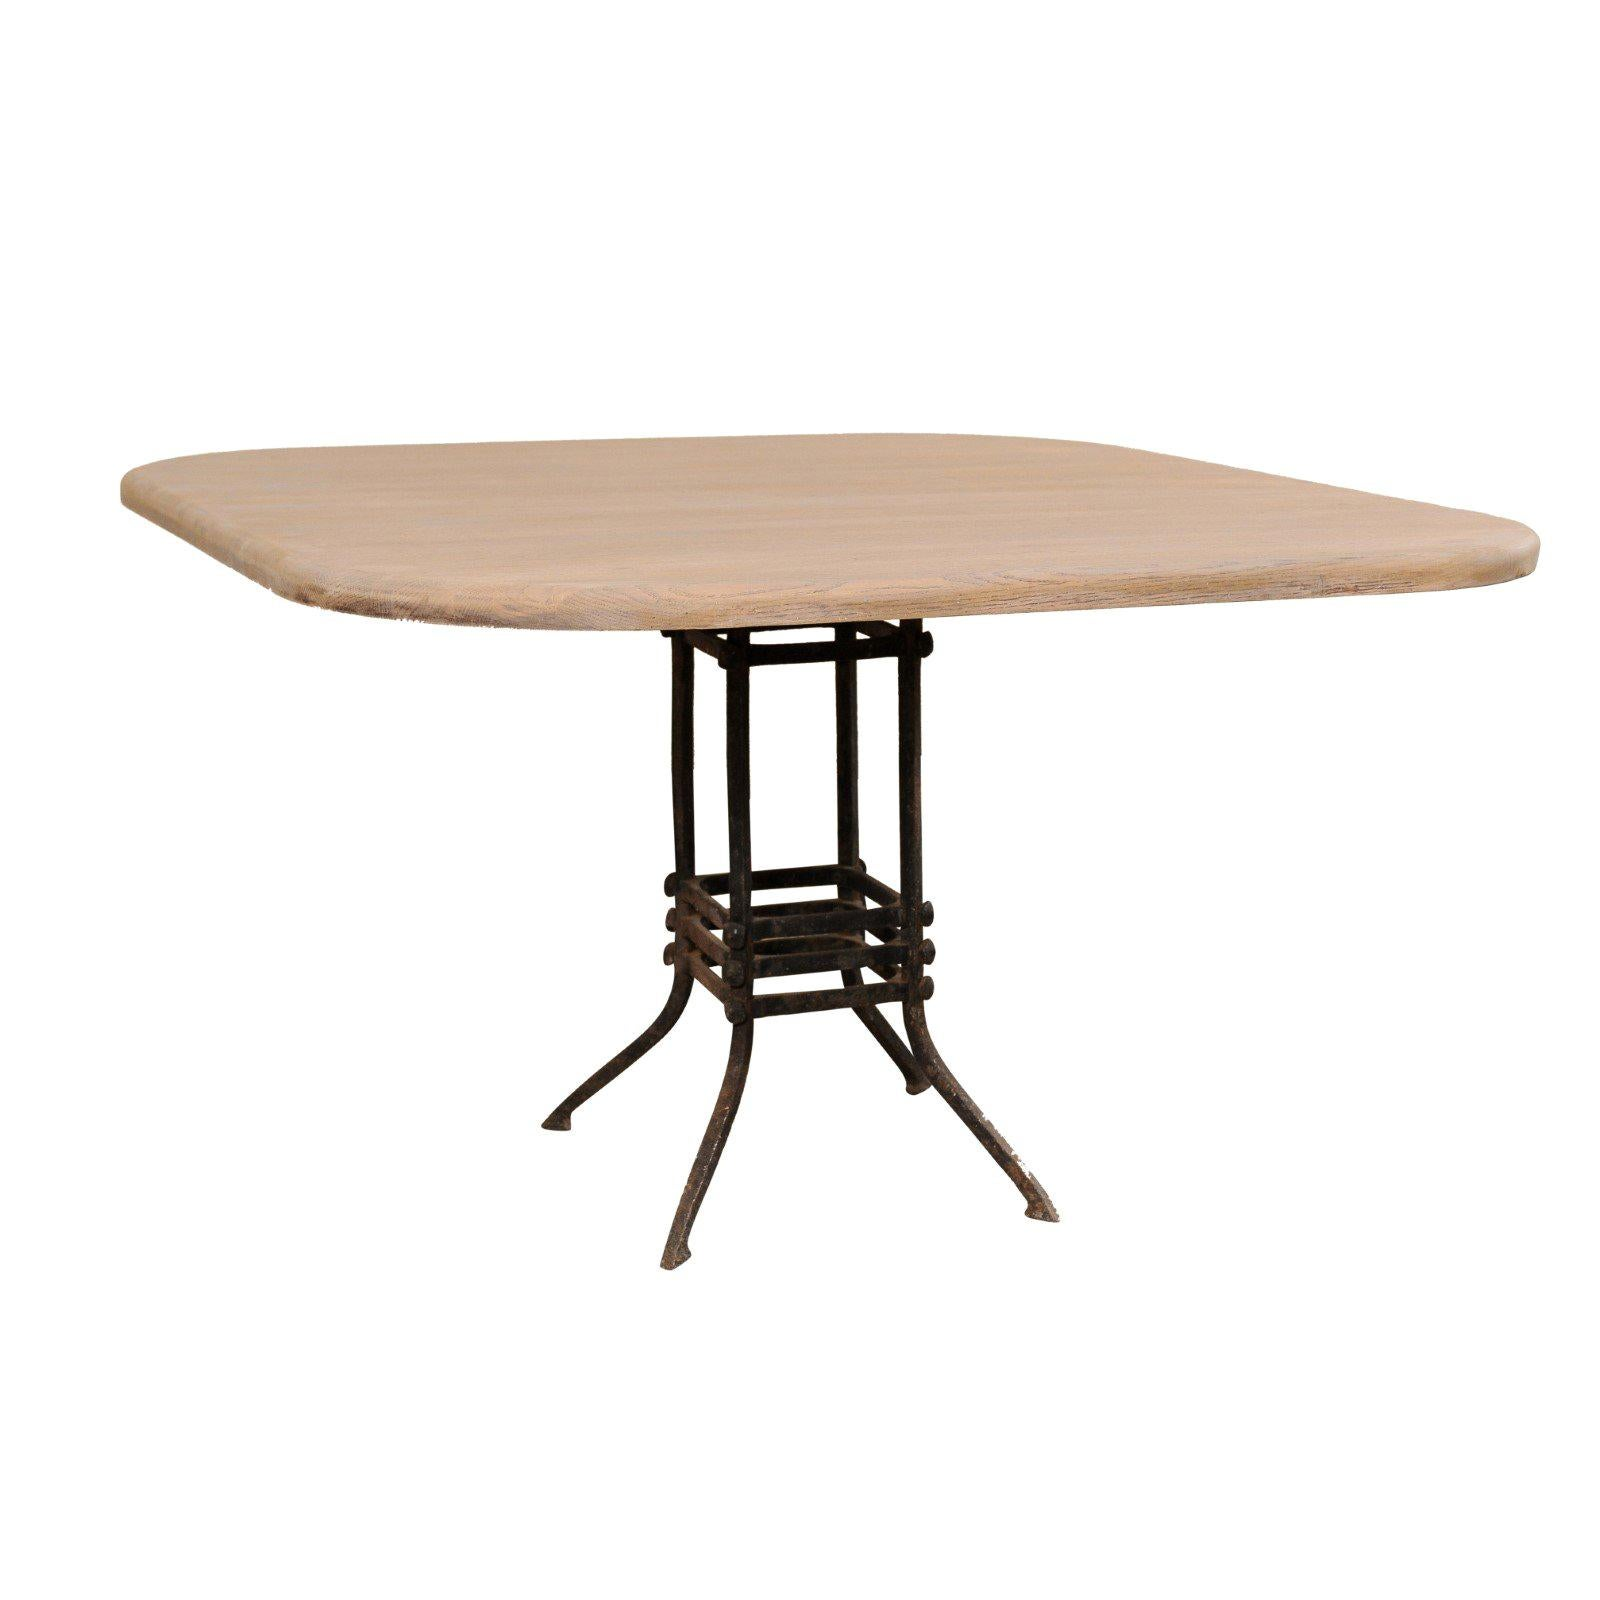 French Square-Top Wood Table Top with 19th Century Iron Base